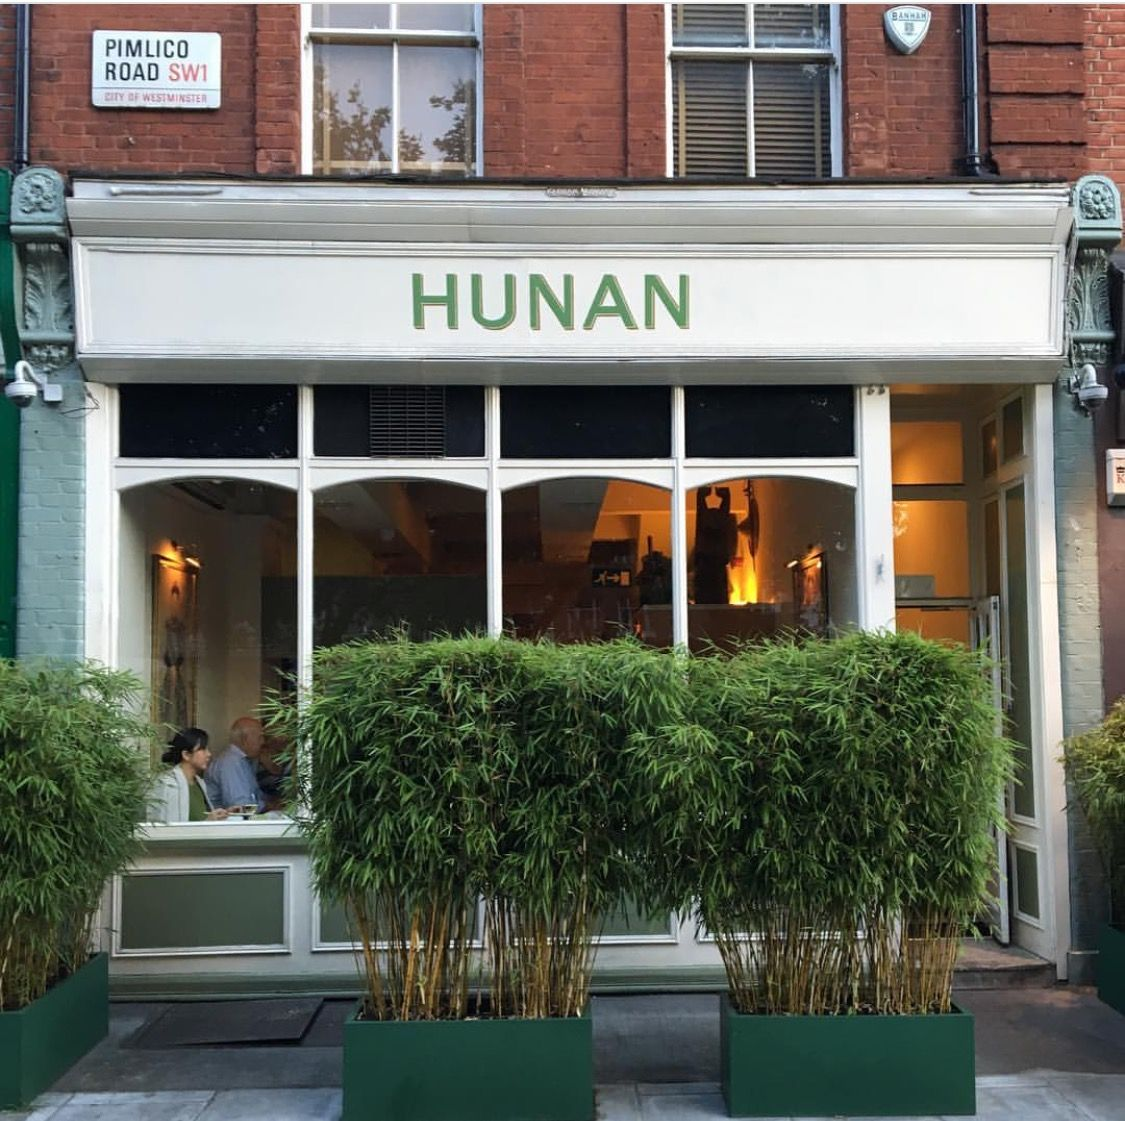 Hunan is a chinese restaurant in battersea